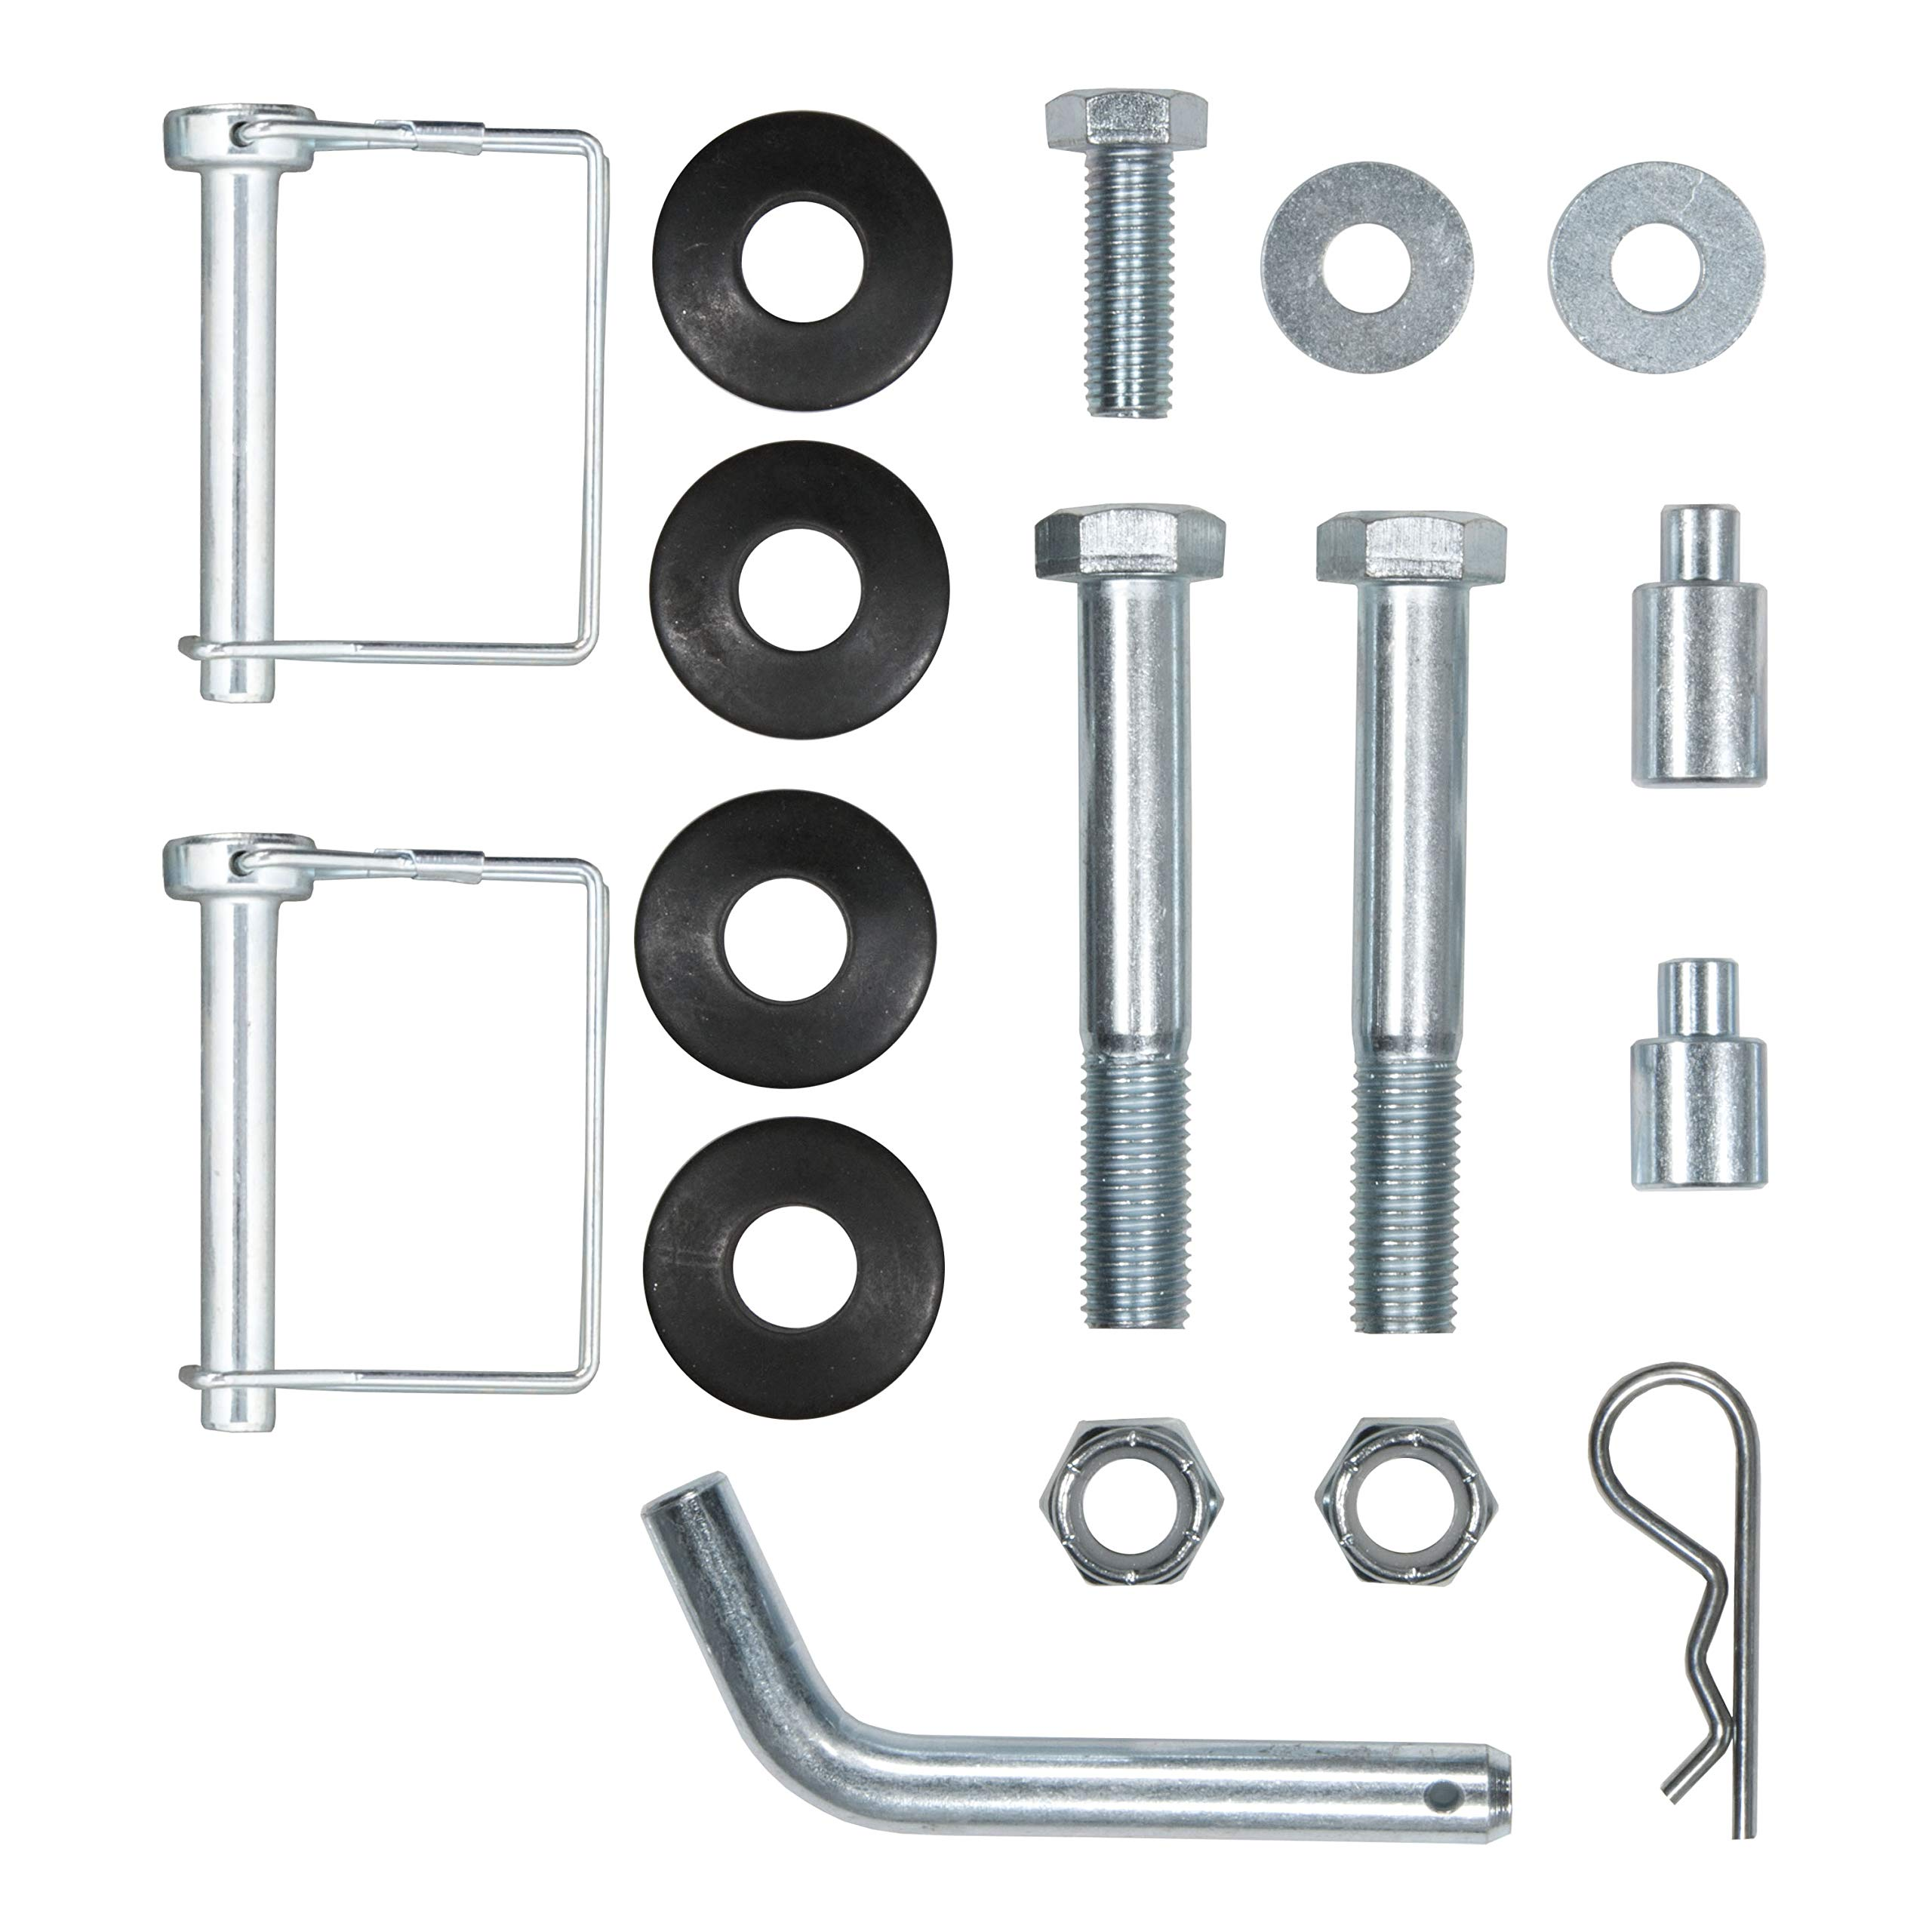 CURT 17554 TruTrack Weight Distribution Hardware Kit for #17501 by CURT